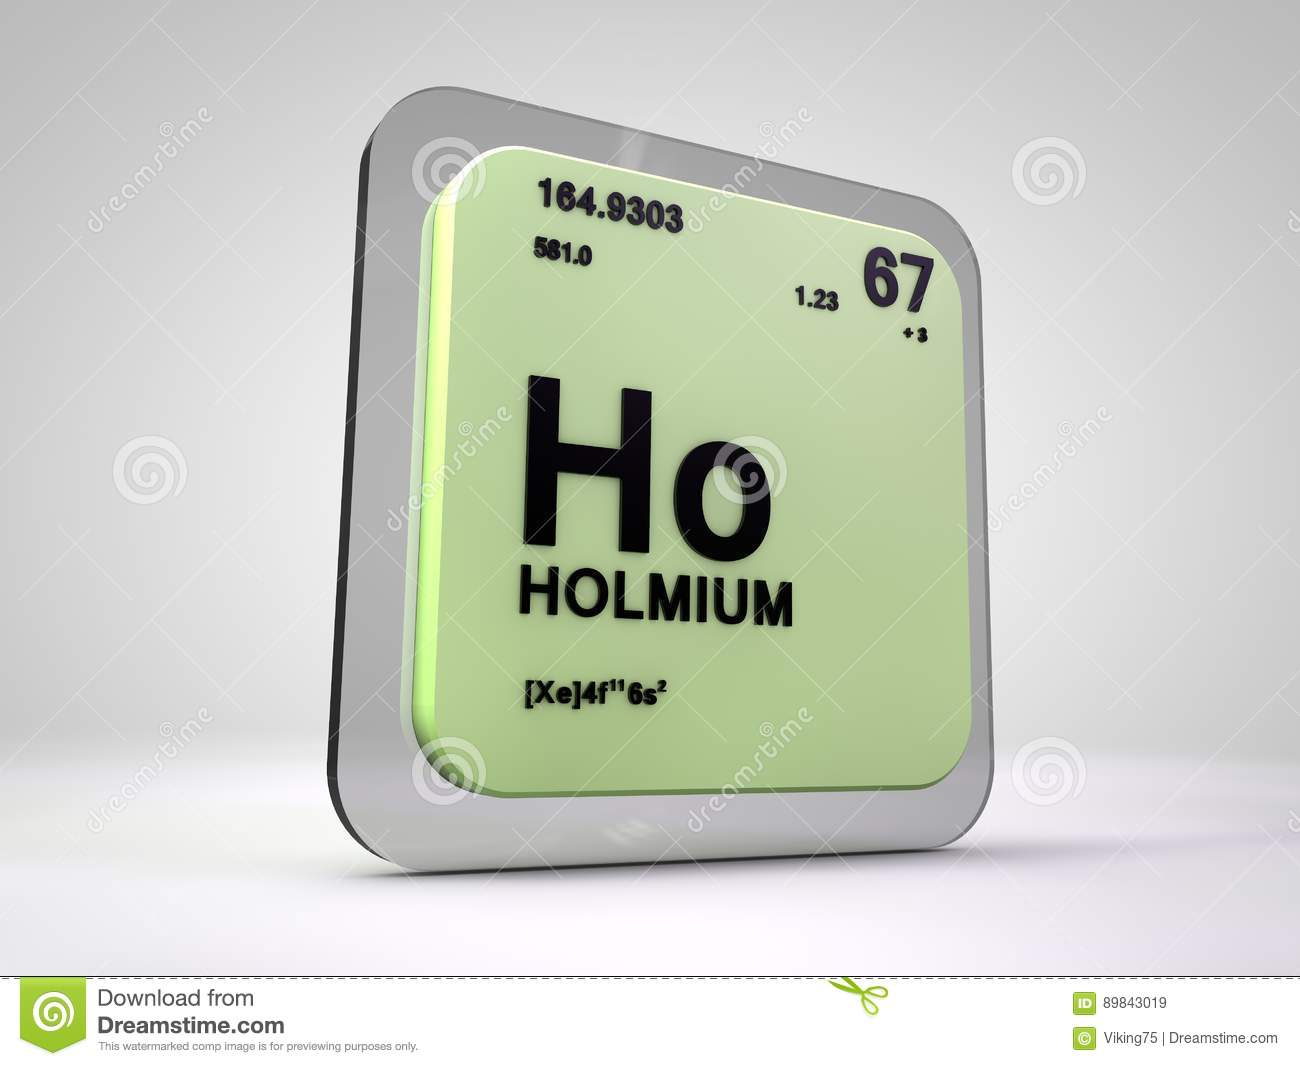 Ho element periodic table gallery periodic table images ho element periodic table gallery periodic table images holium ho chemical element periodic table stock illustration gamestrikefo Gallery